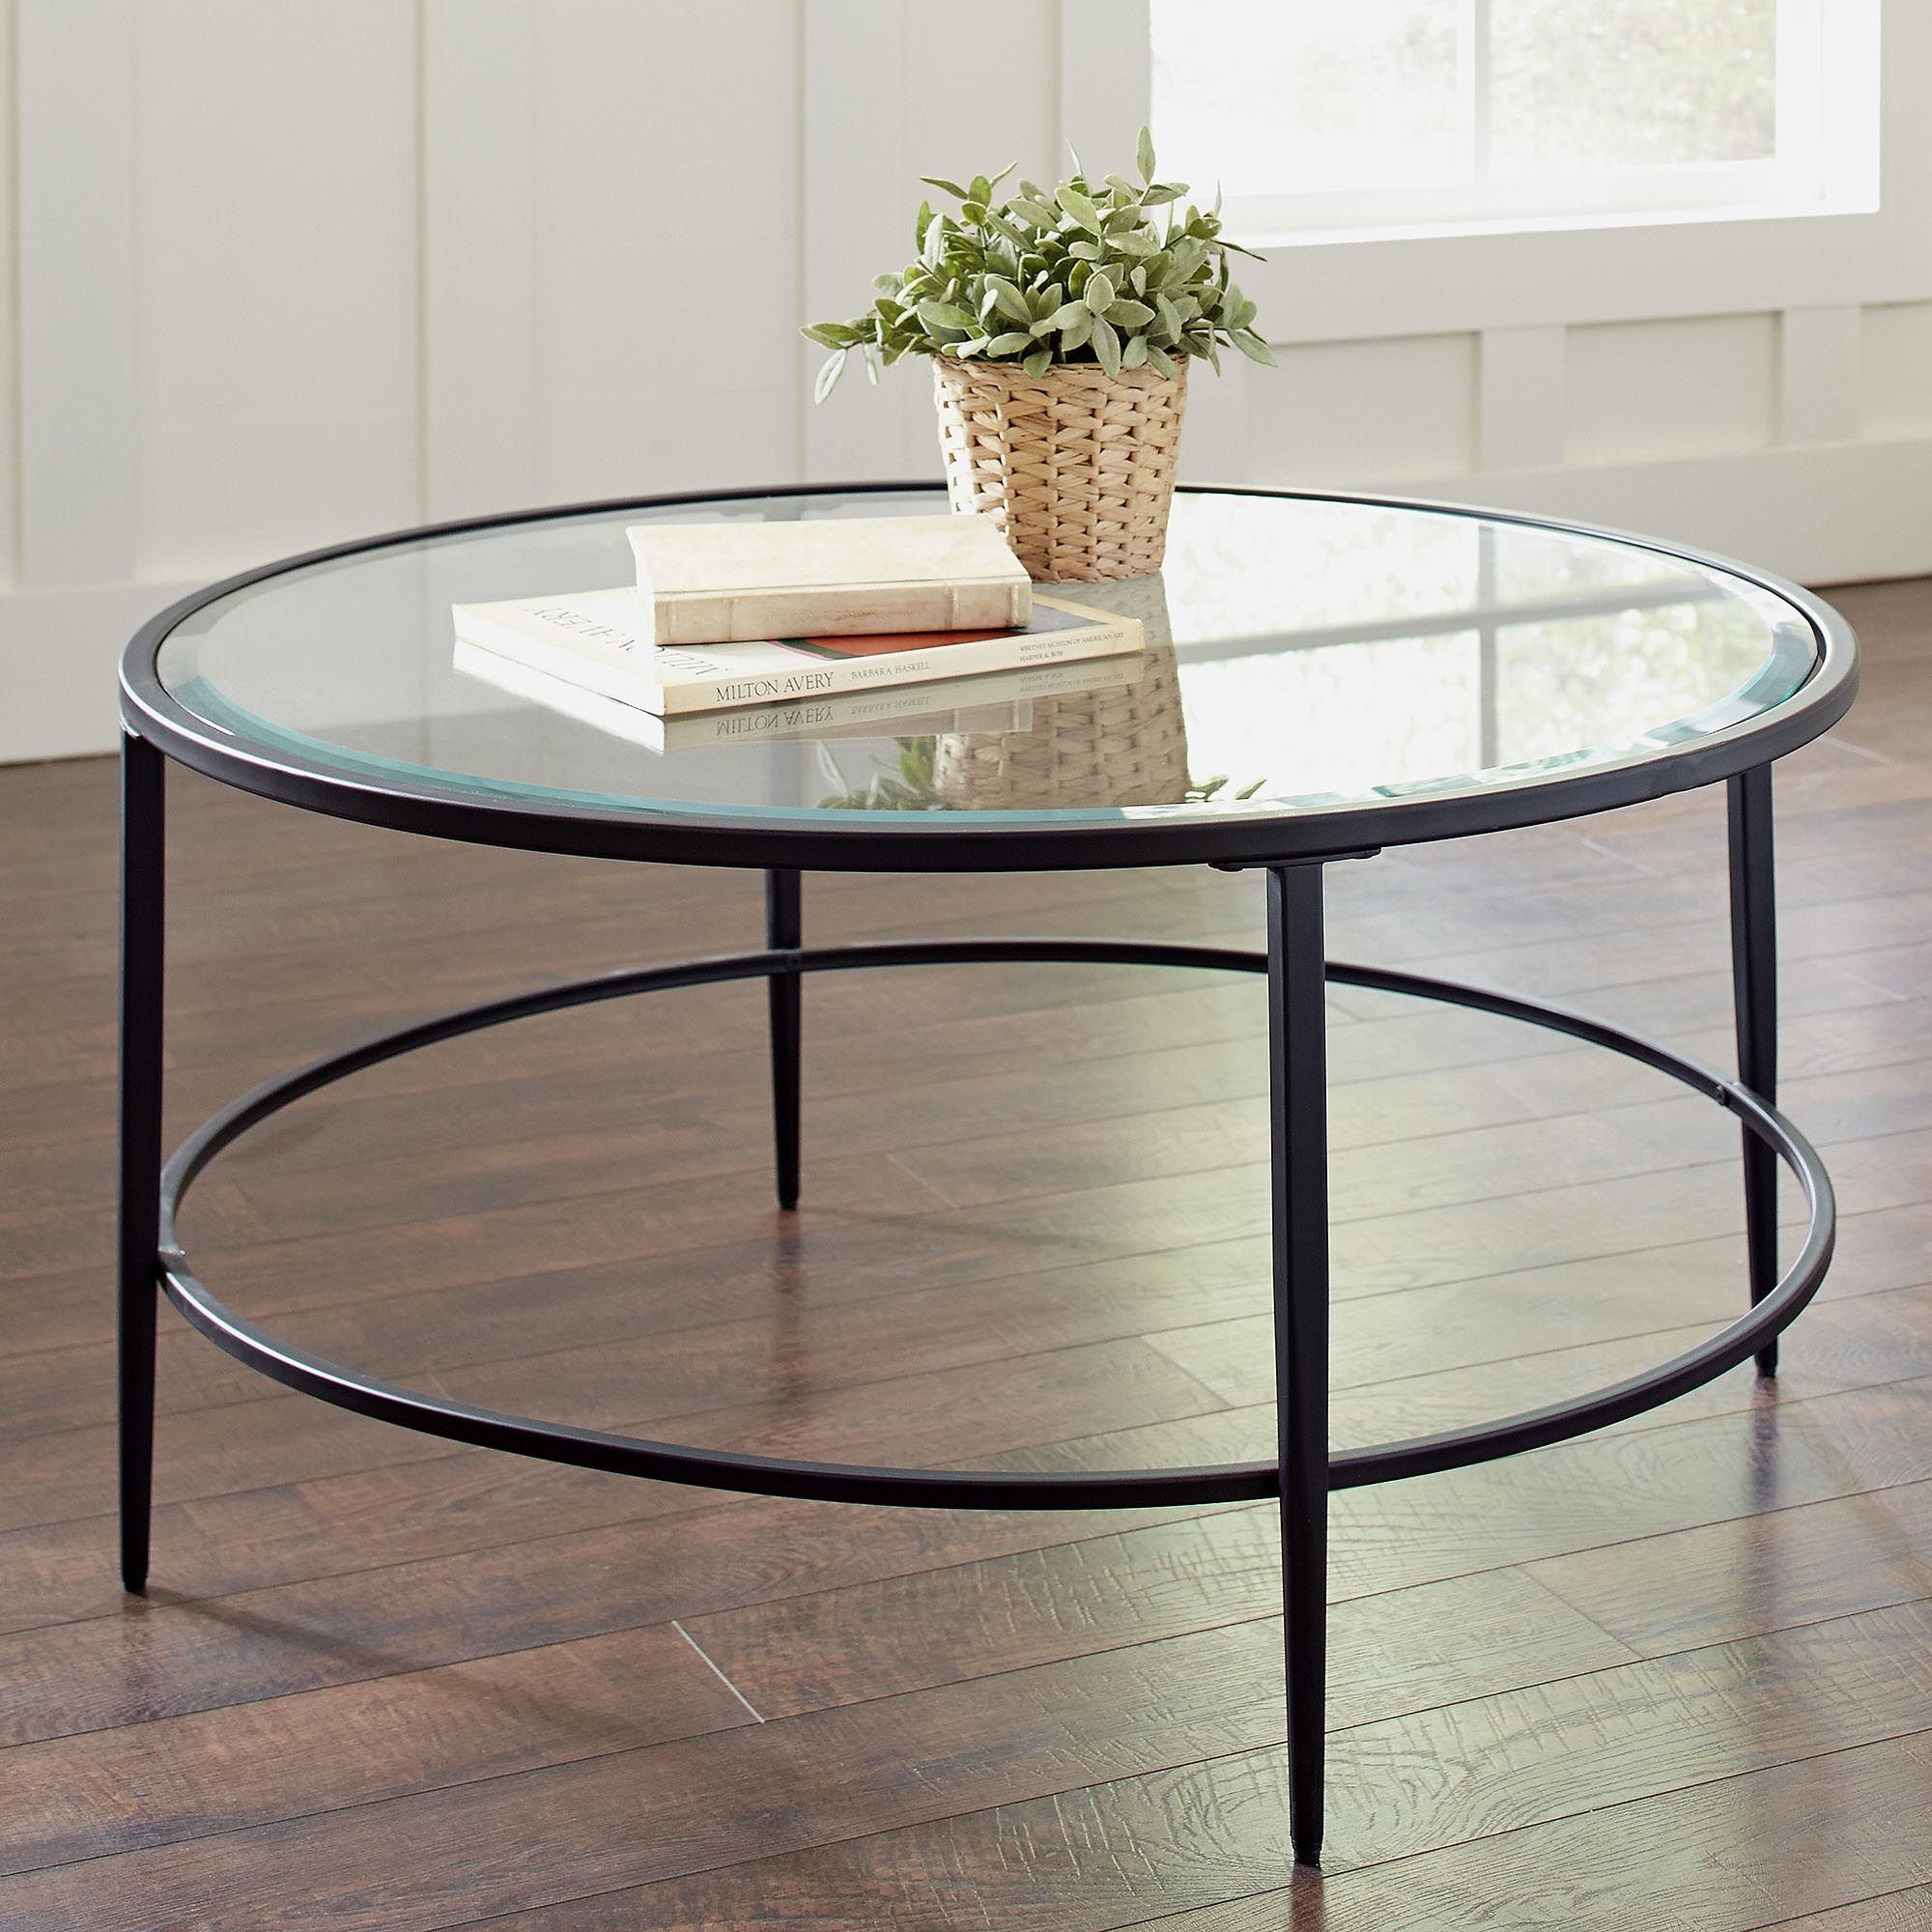 Glass Circle Coffee Table Basement Pinterest Coffee Glass and